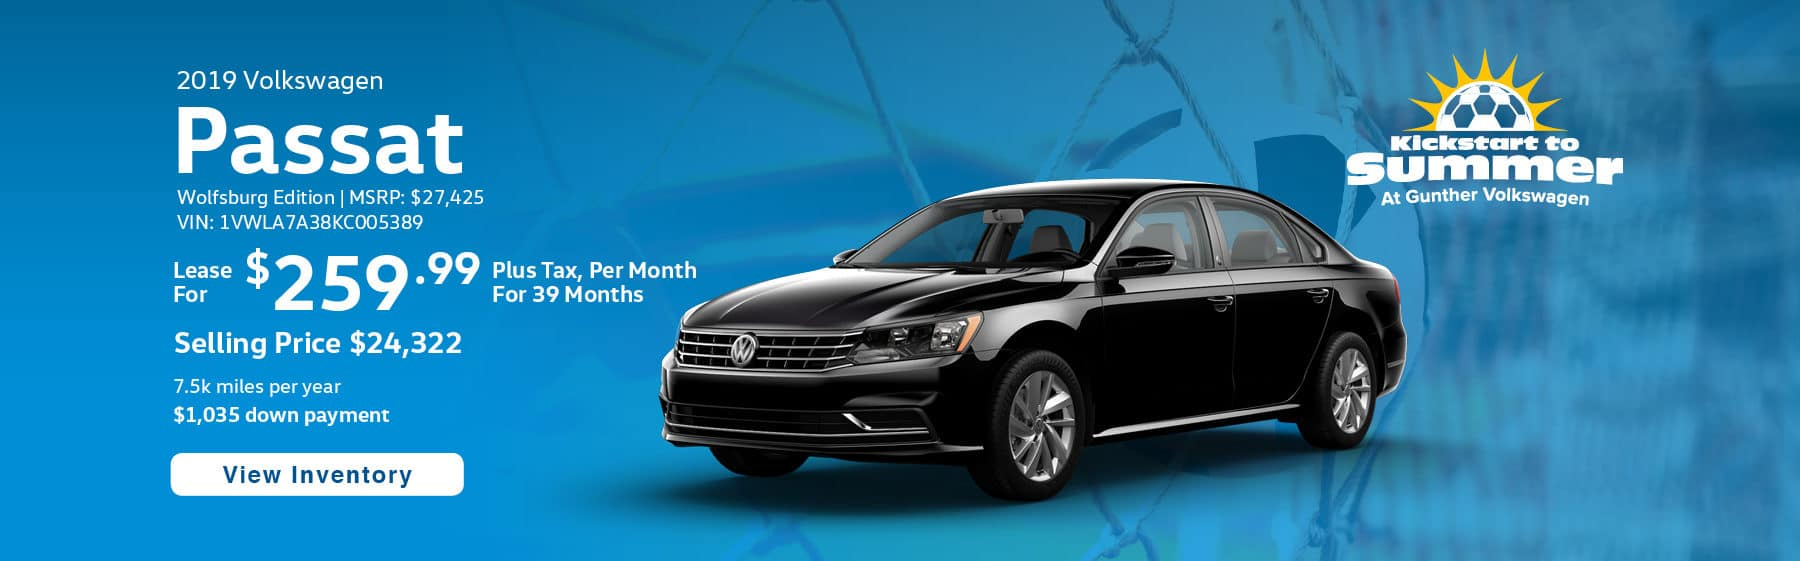 Lease the 2019 Passat Wolfsburg Edition for $259.99 per month, plus tax for 39 months.